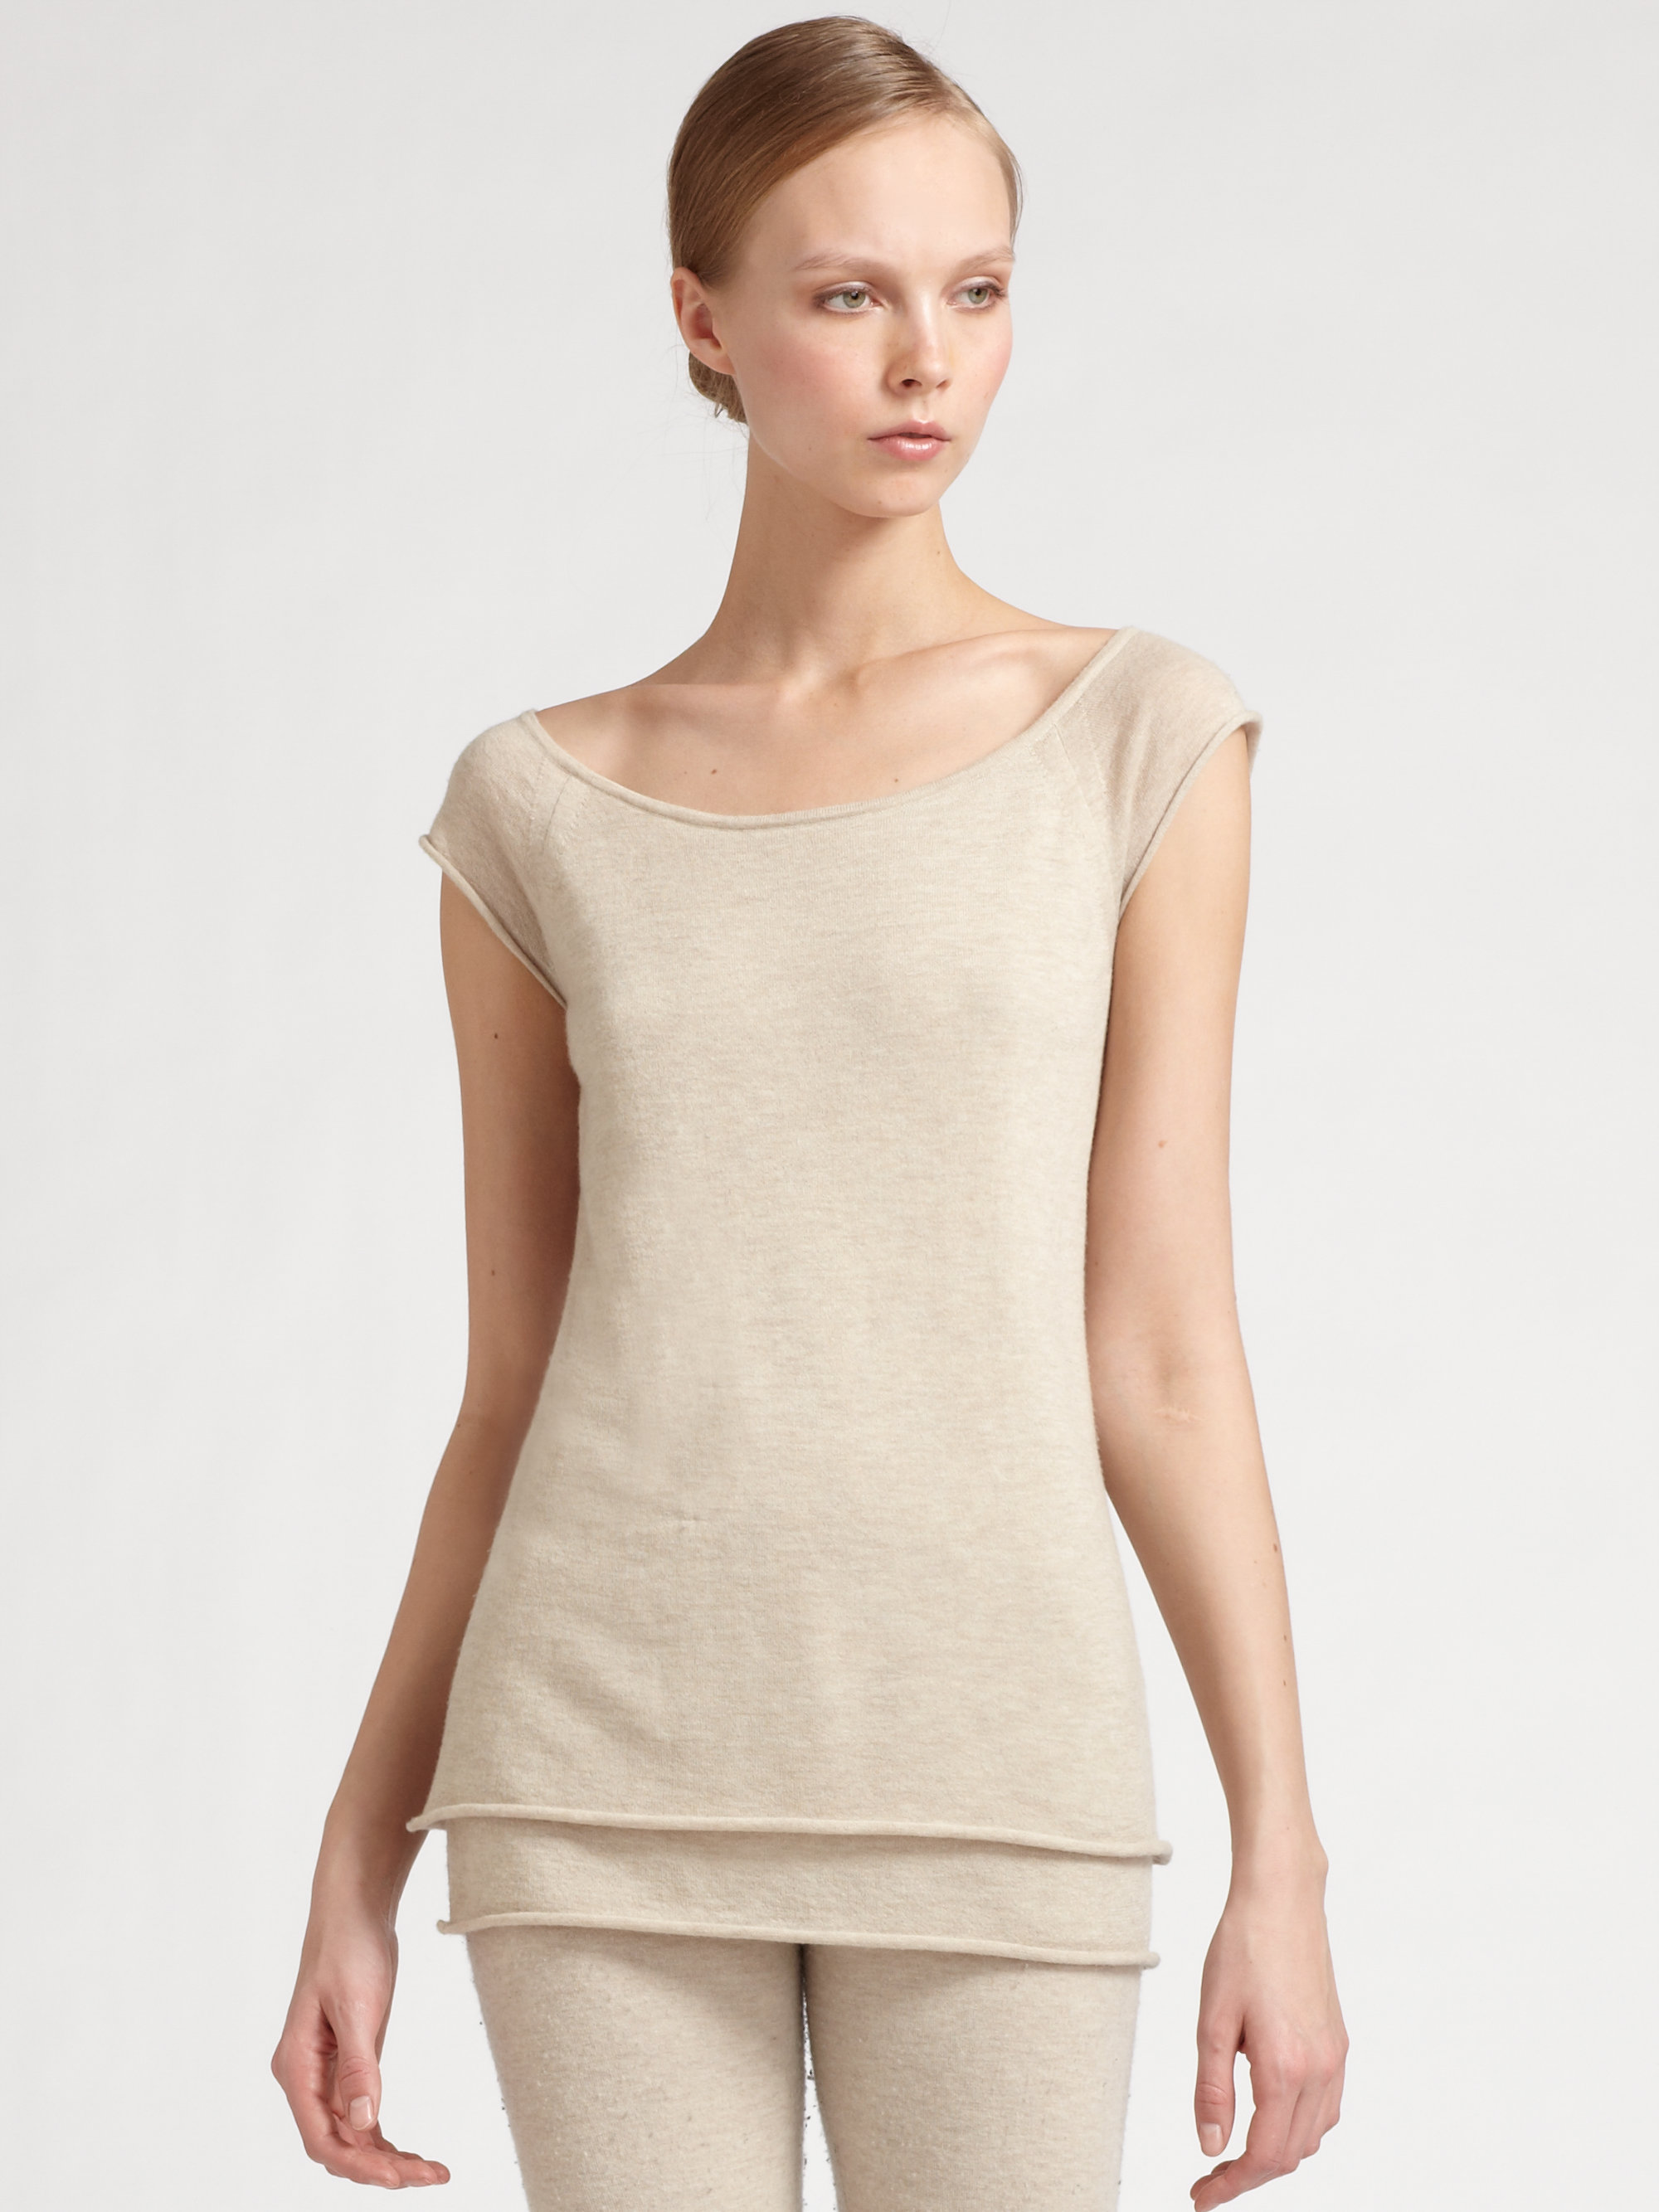 Donna karan new york double layer cashmere top in beige for Donna karen new york